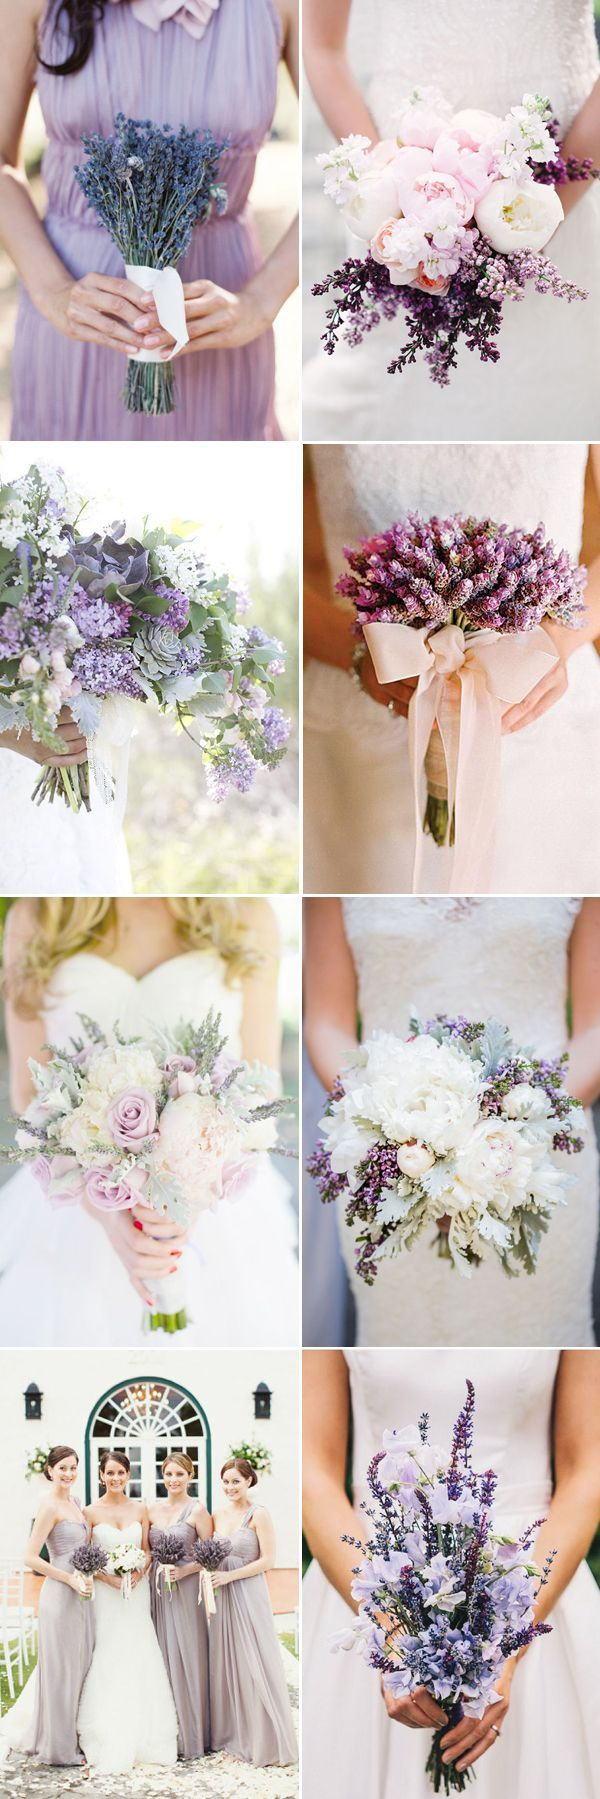 45 Romantic Ways to decorate your wedding with lavender - Bouquets! frugal wedding Ideas #frugal #wedding